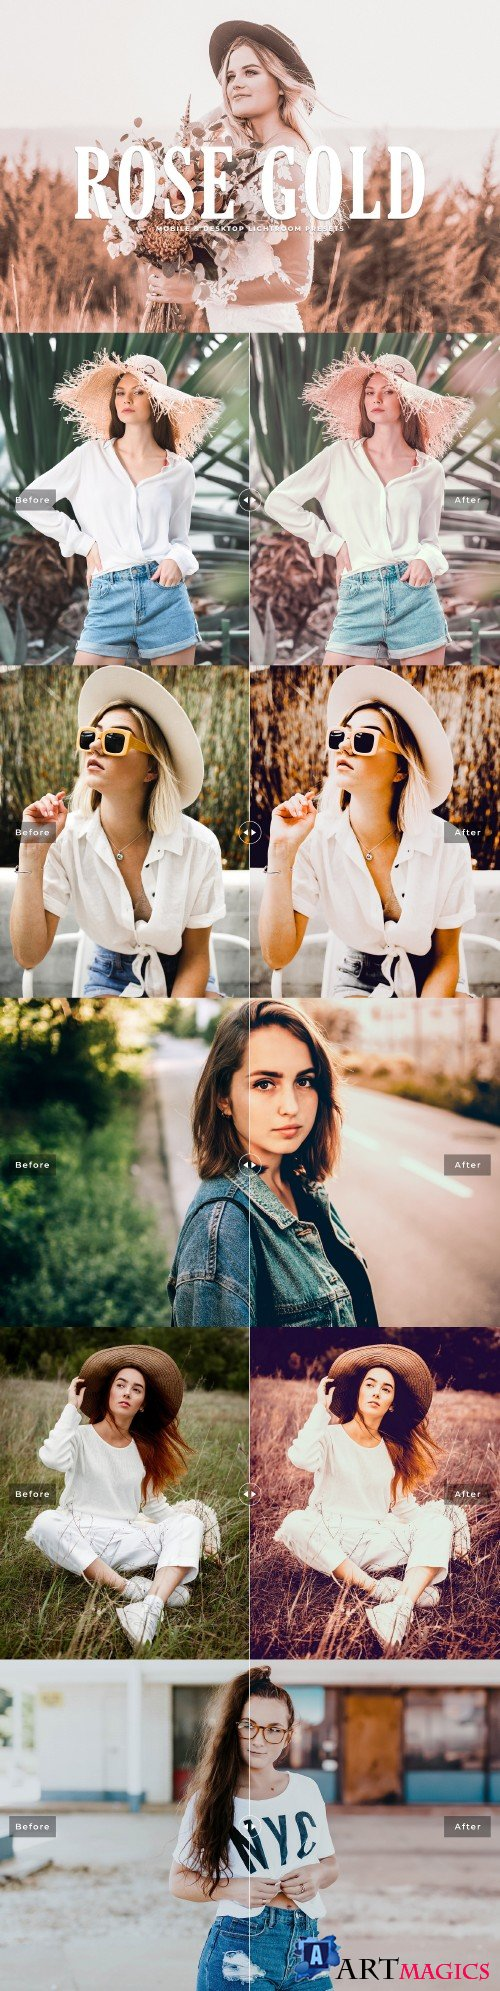 Rose Gold Lightroom Presets - 3637772